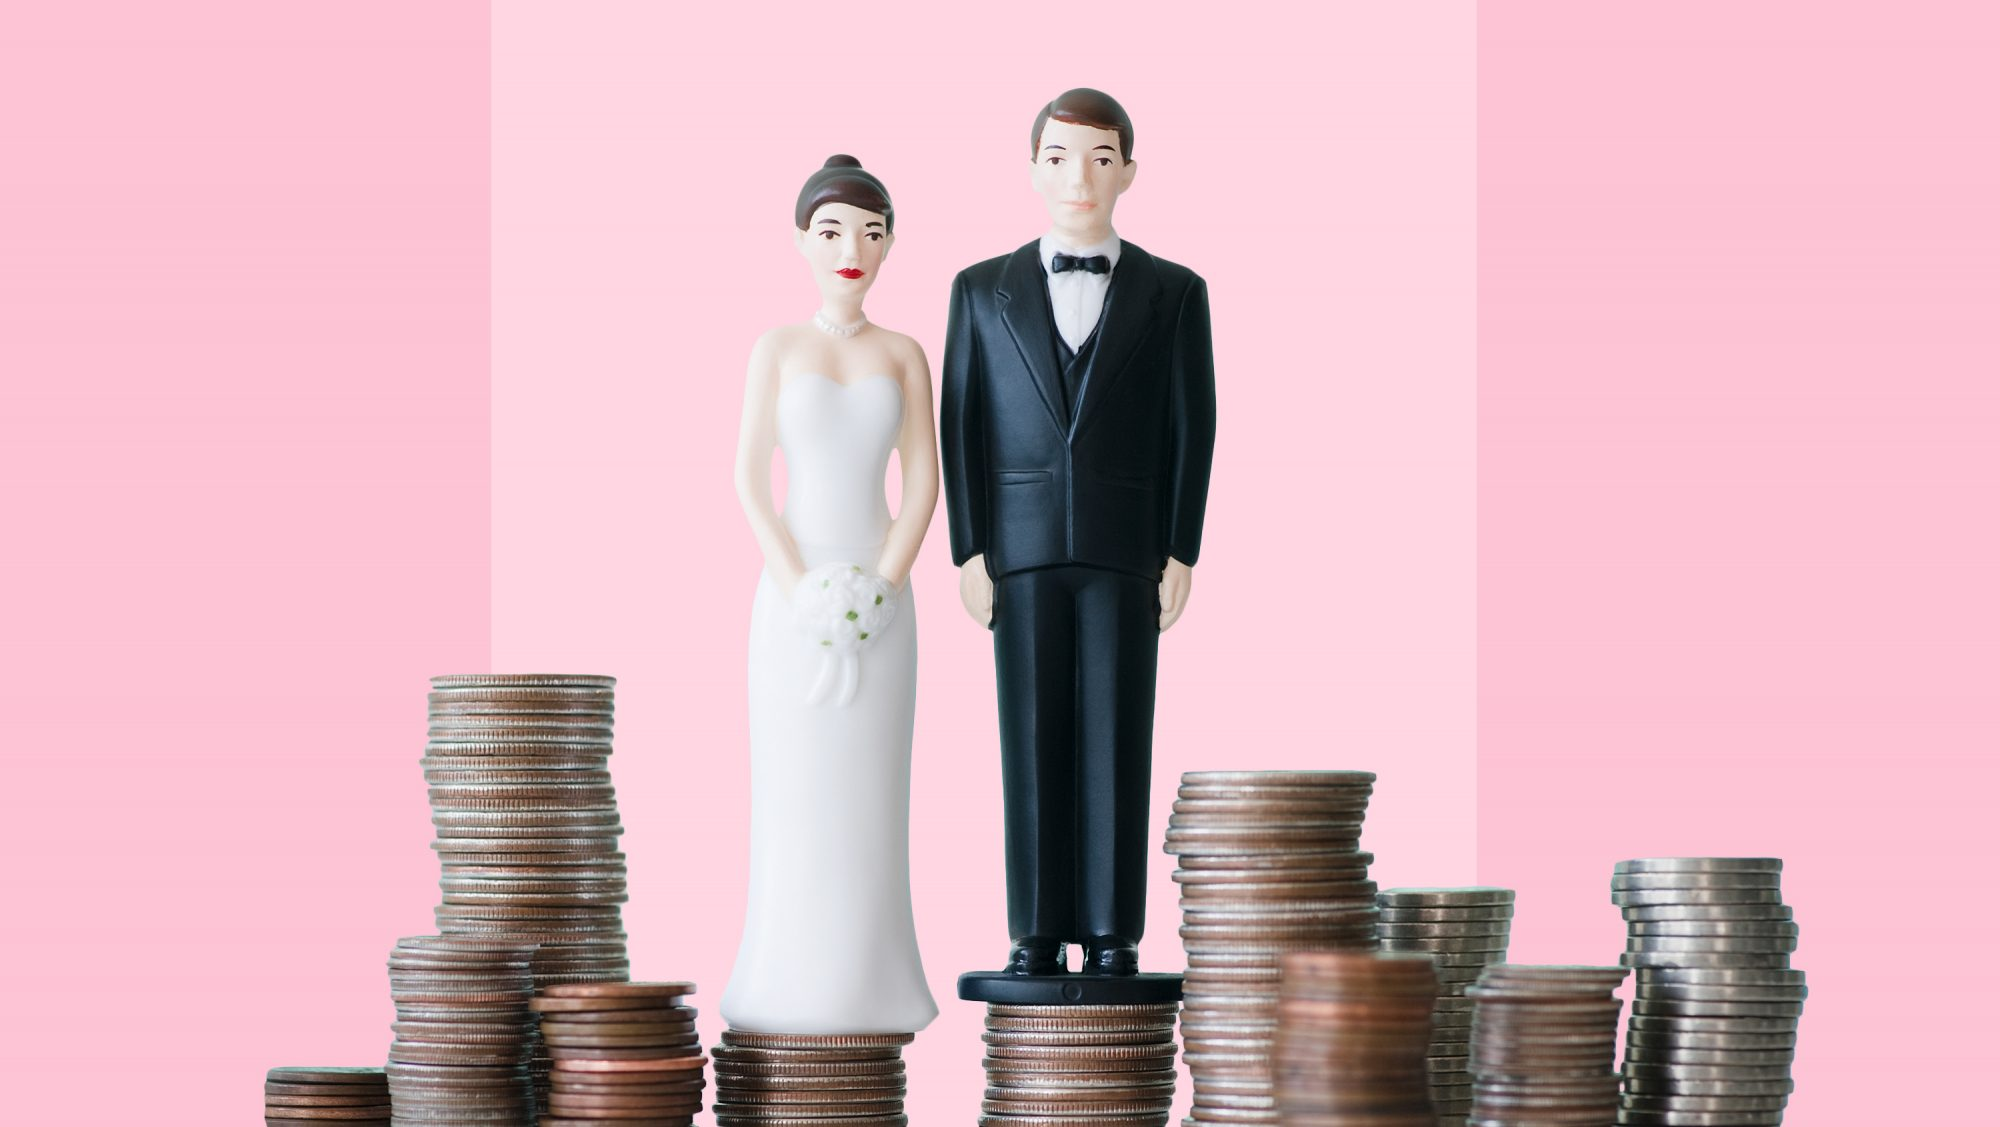 bride and groom wedding cake toppers standing on money: What Does Wedding Insurance Cover